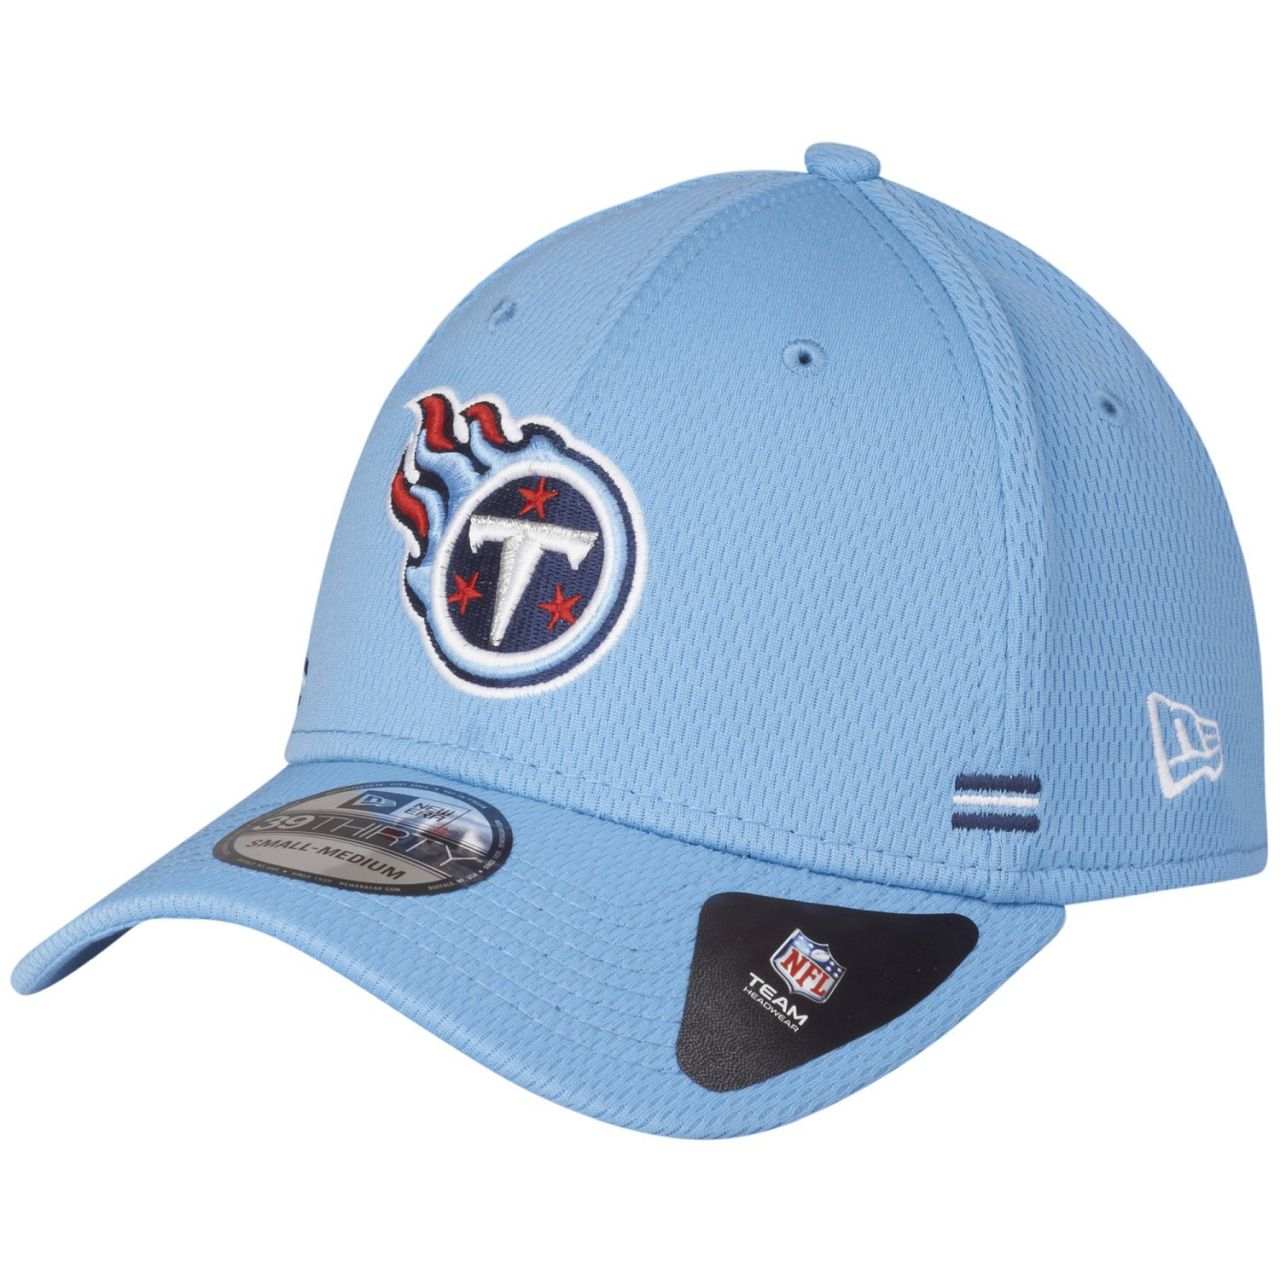 amfoo - New Era 39Thirty Cap - HOMETOWN Tennessee Titans